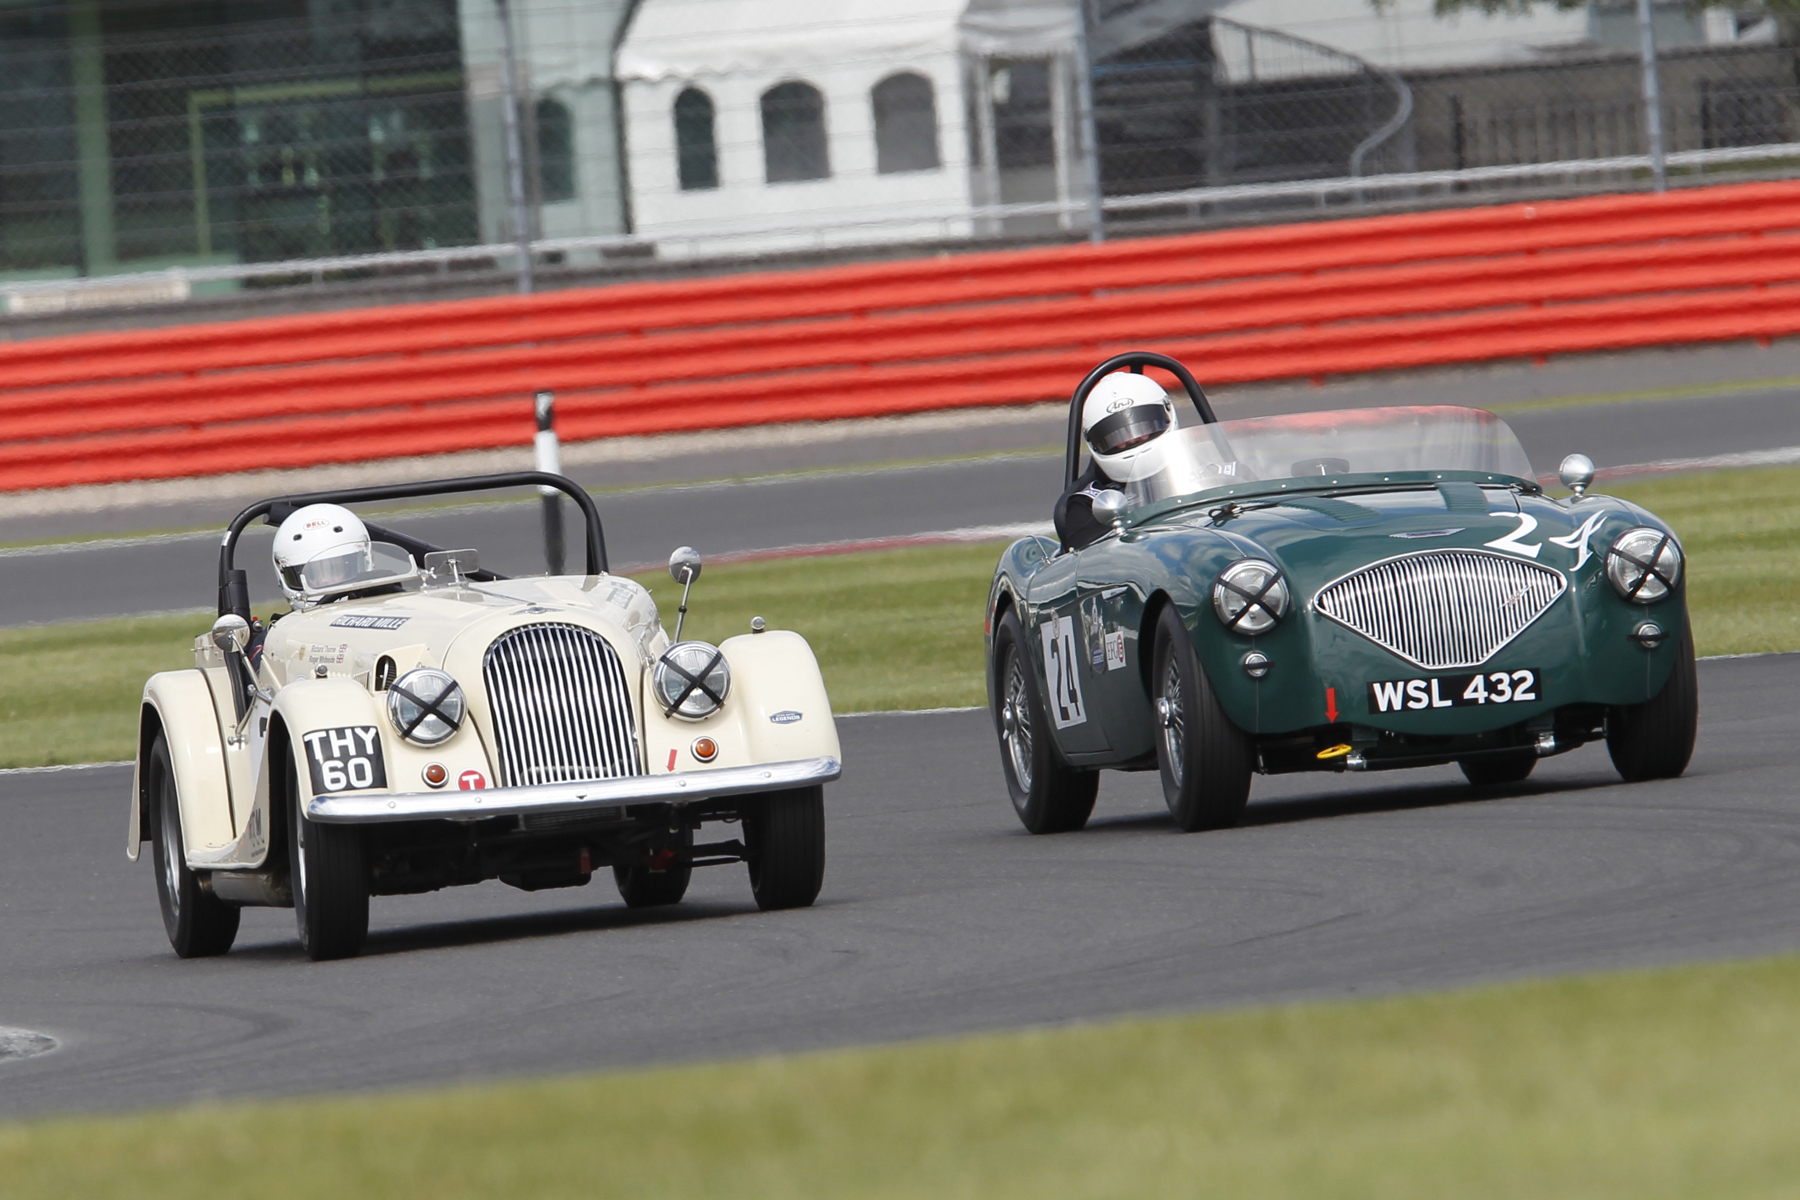 Richard Thorne and Jim Campbell kept each other company in the race as well as qualifying. Unfortunately the battle did not go to the flag as Richard had to retire the Morgan                                           Photo - Mick Walker